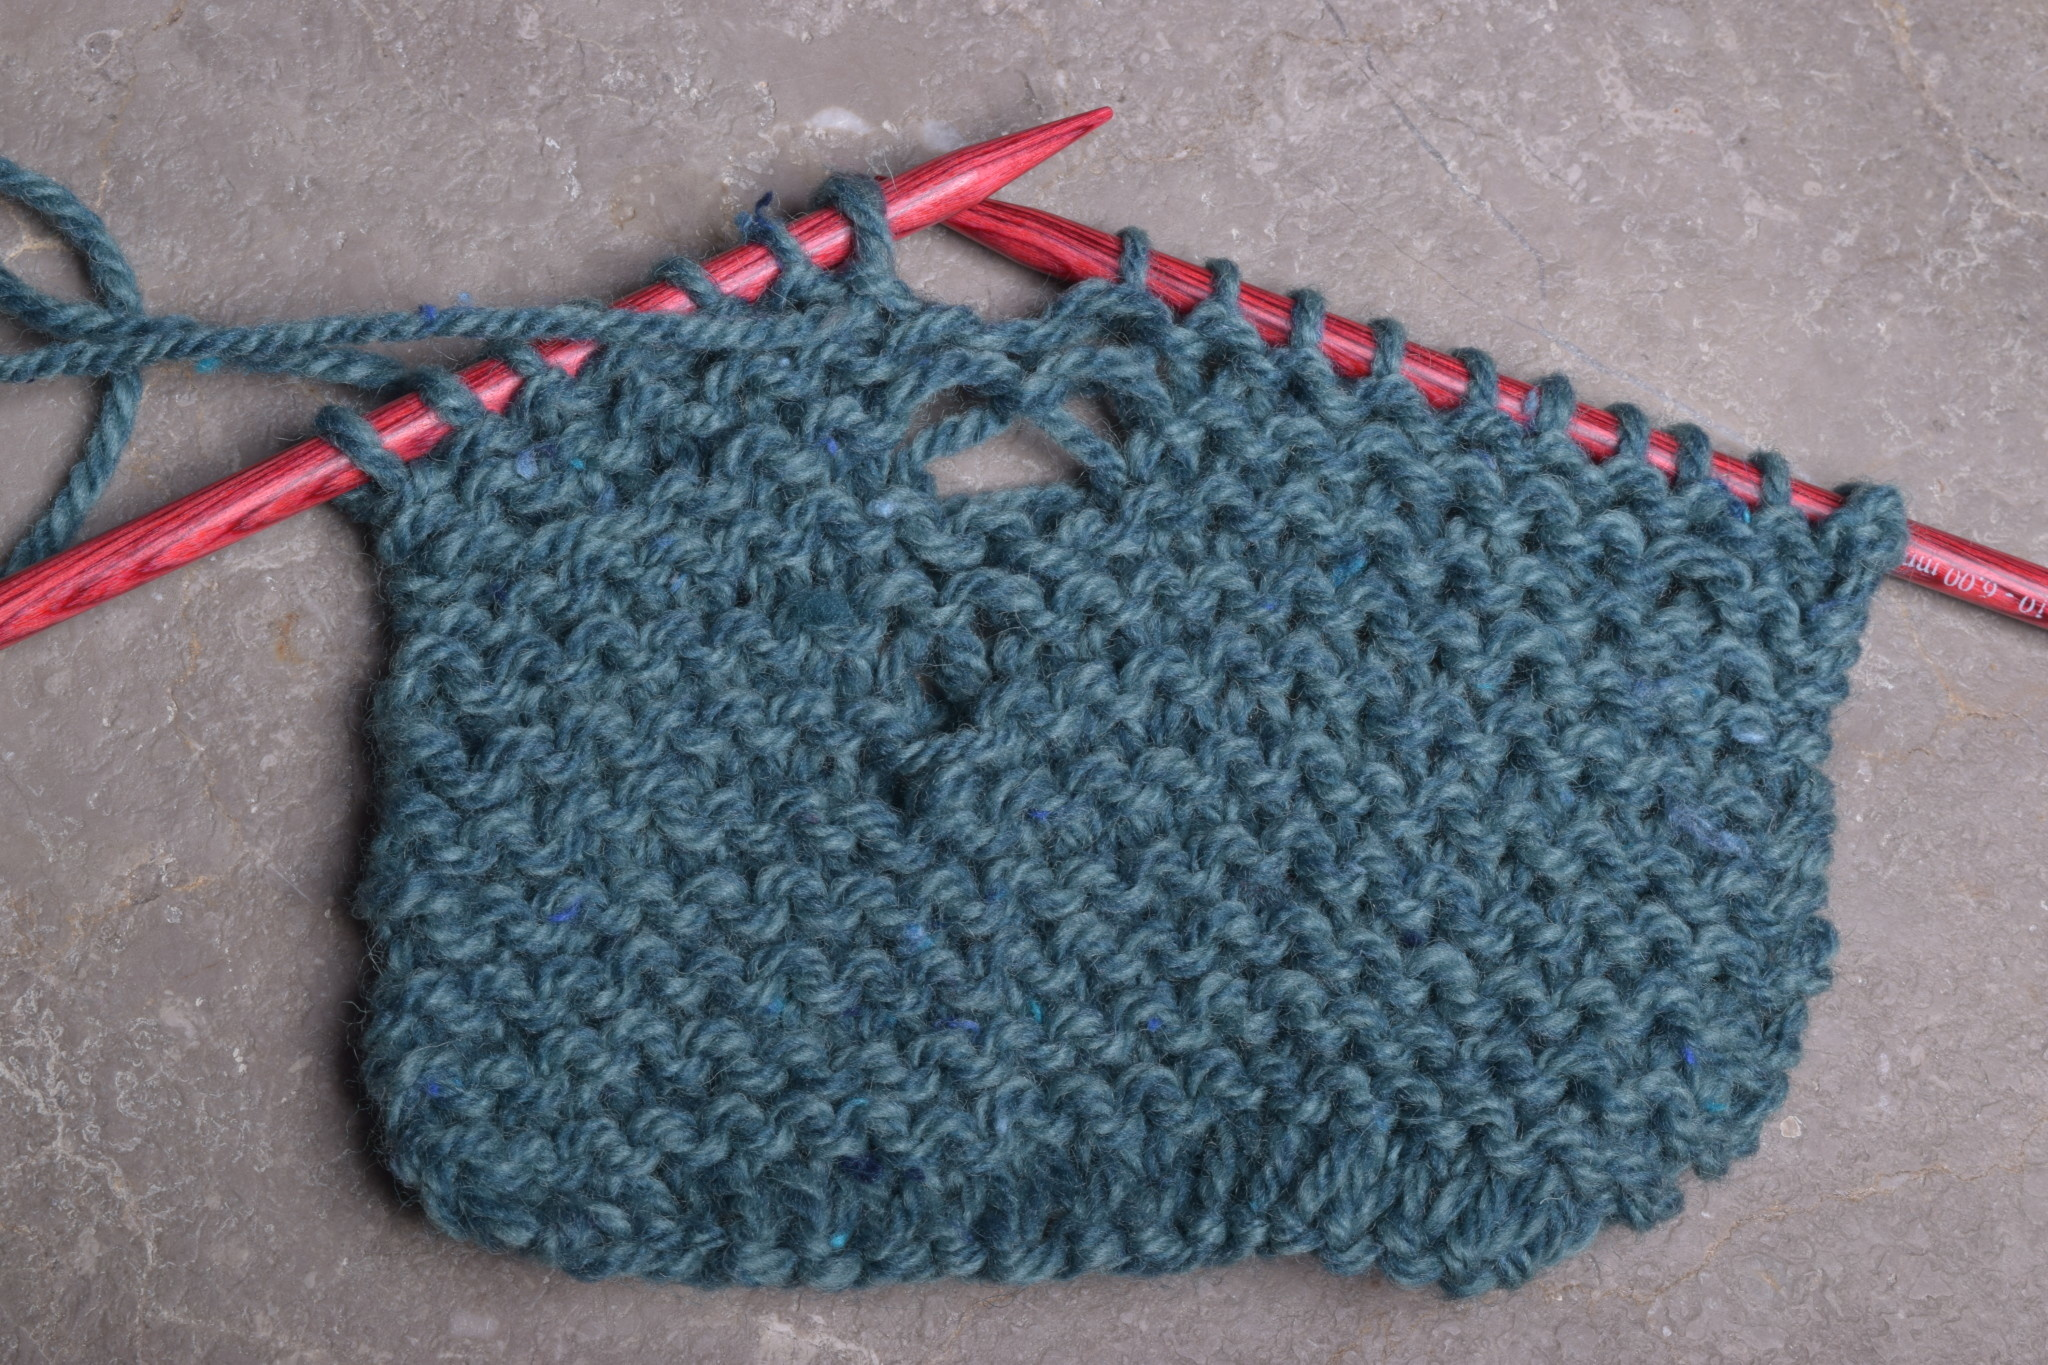 Fixing Knitting Mistakes; Tuesday, April 23;  12:00-2:00PM